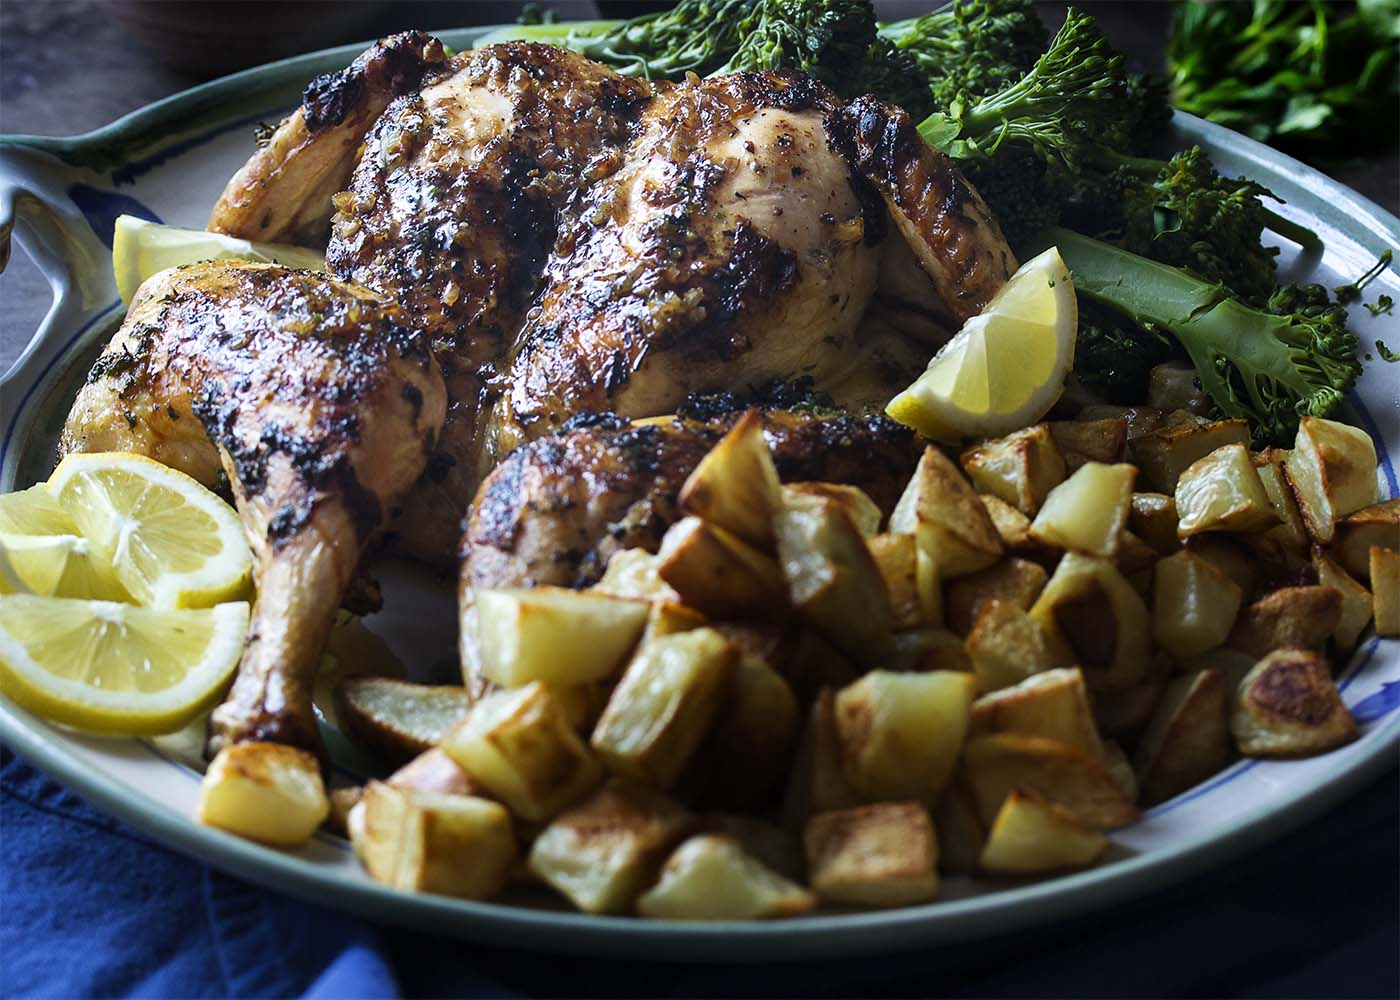 A French herb rub, a sweet and spicy glaze, and a caramelized shallot butter all combine to make a grilled whole chicken full of layered flavors. | justalittlebitofbacon.com